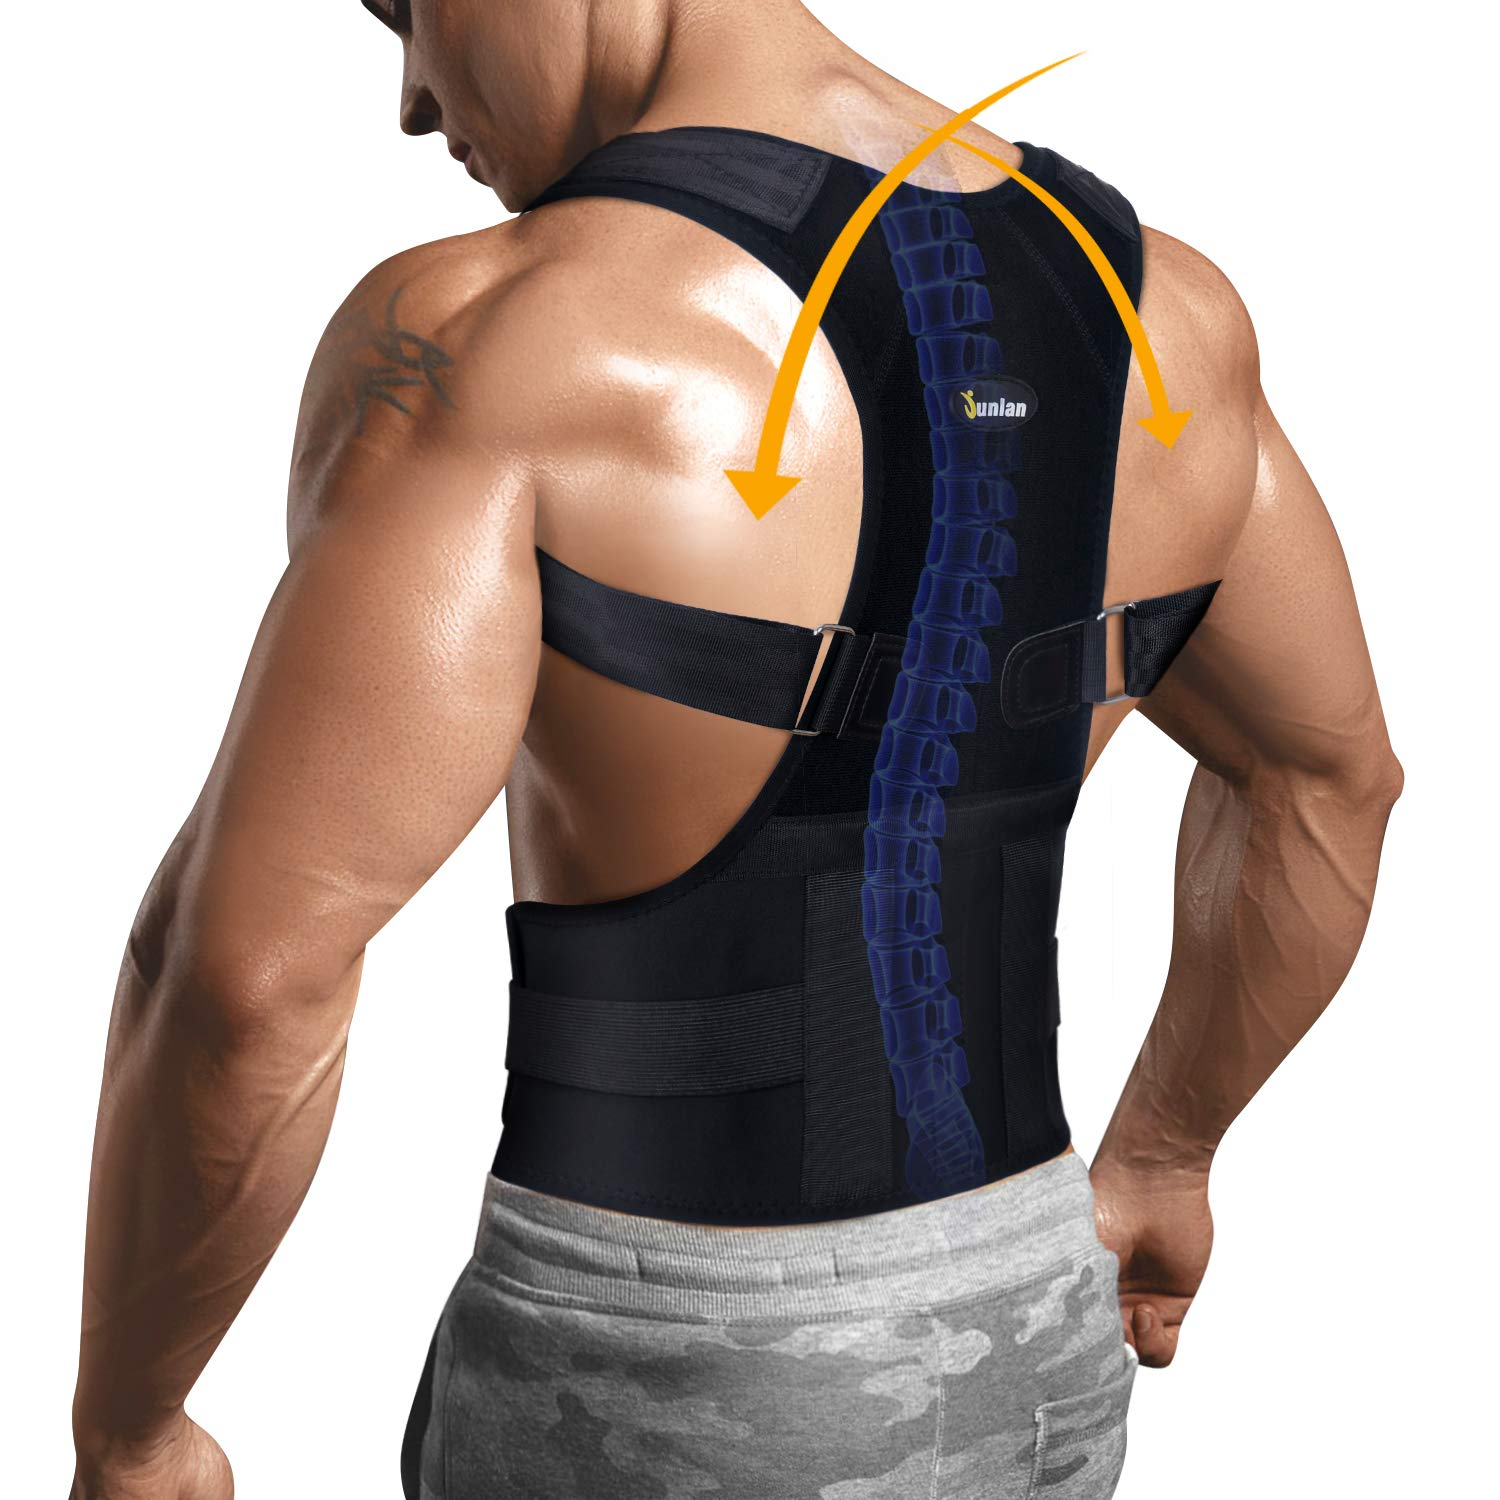 Back Holder Posture Corrector with Lumbar Support Belt for Shoulder and Neck Pain Relief Device Adjustable Clavicle Support Brace (Black, M) by Junlan